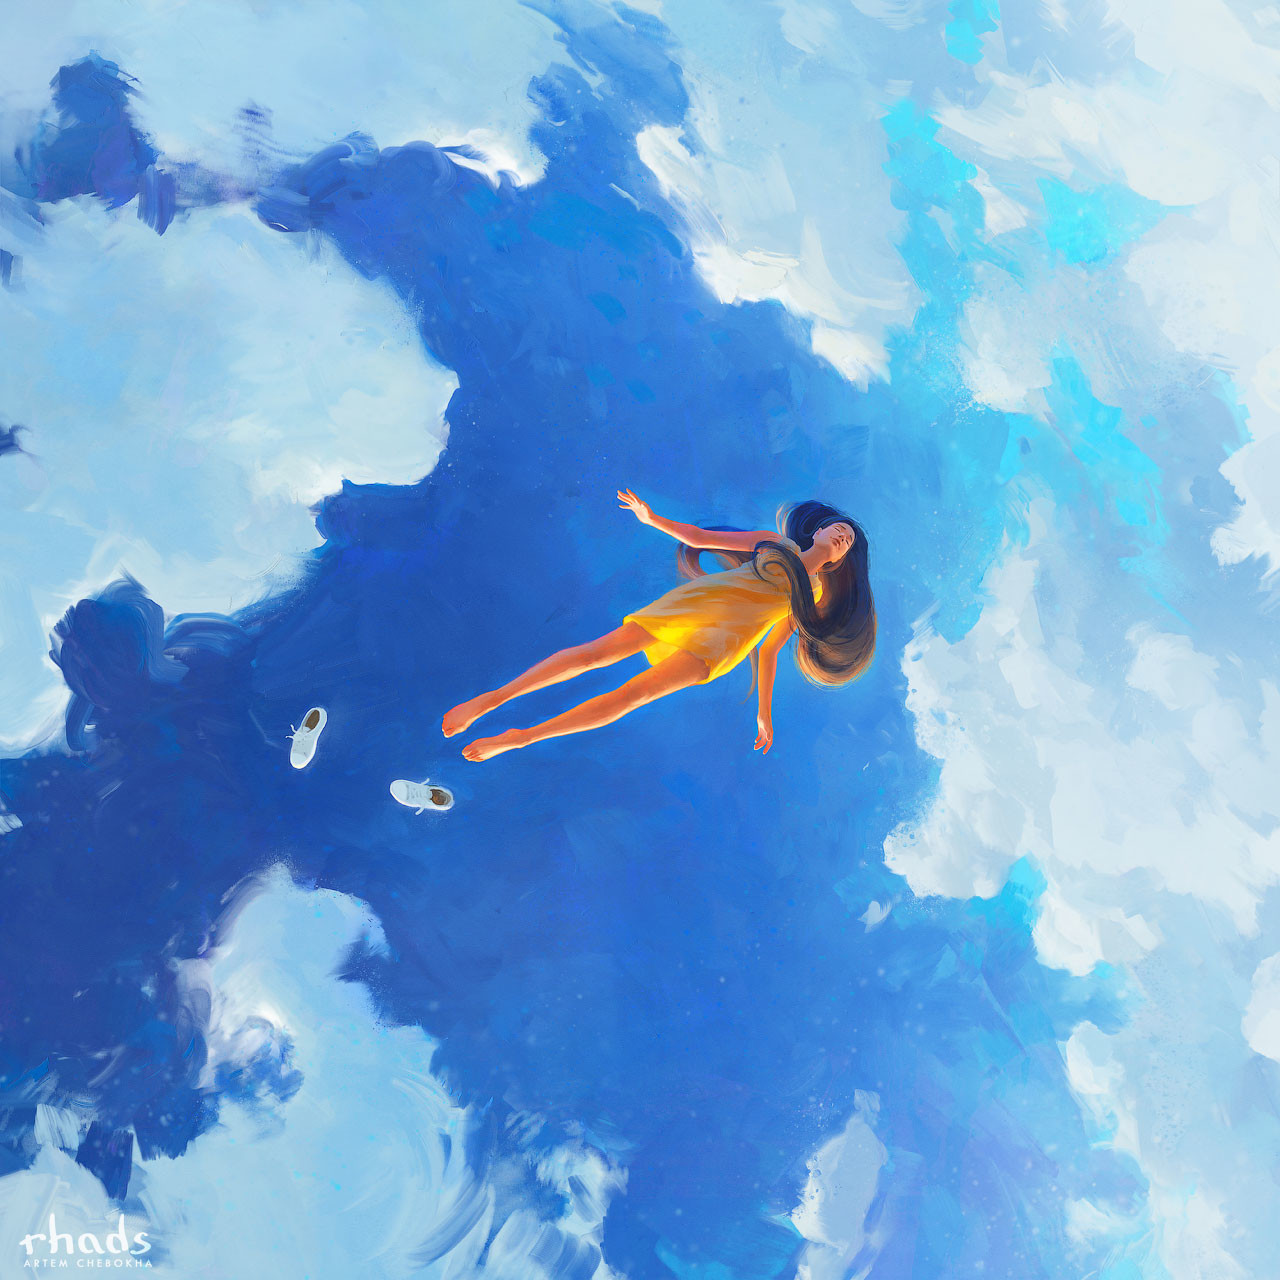 Digital Painting Illustration Artem Chebokha Rhads Woman flotting flying Sky Clouds